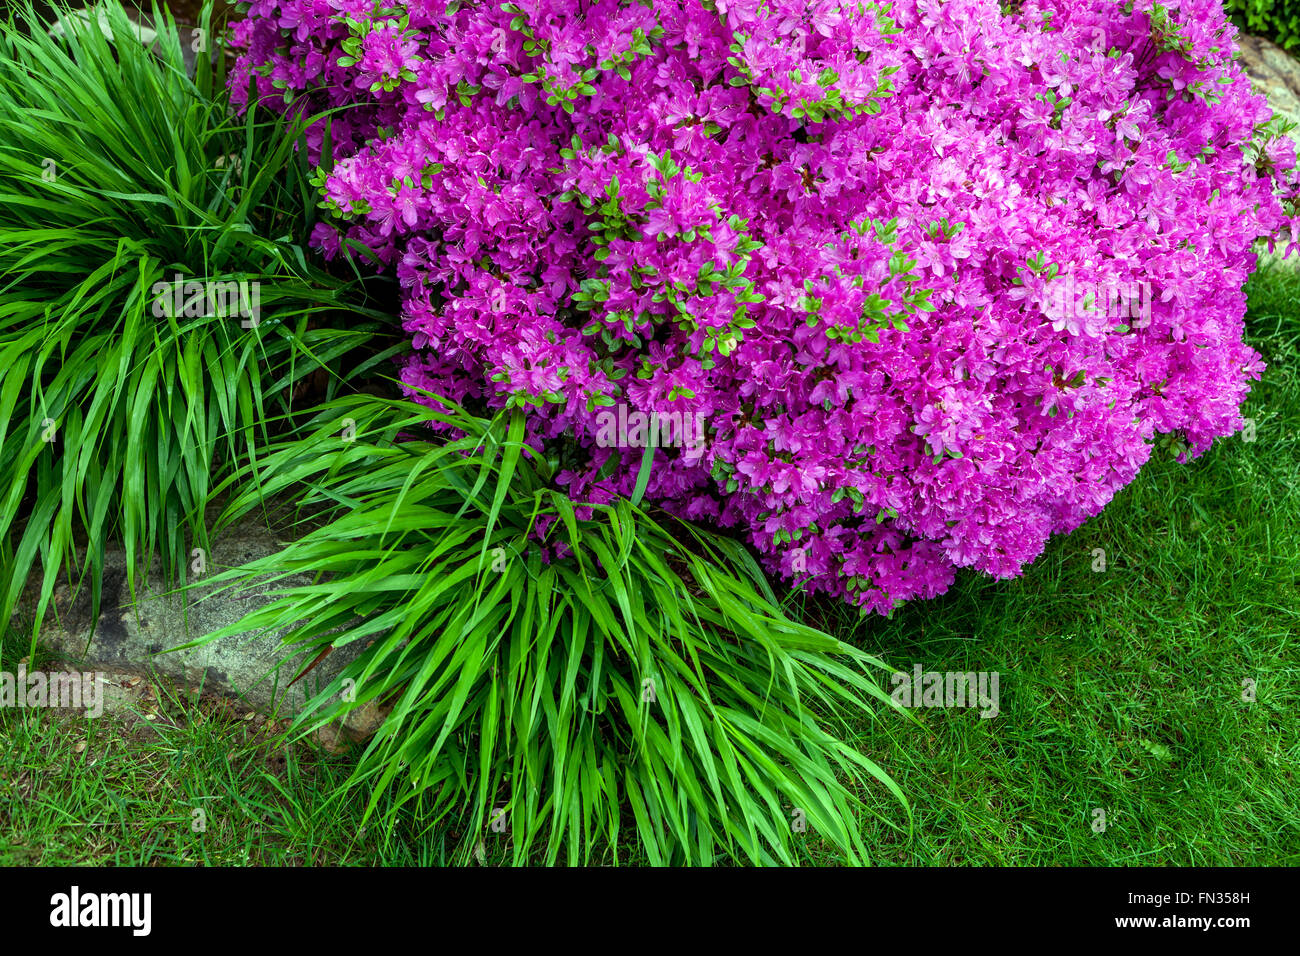 Luzula sivatica 'Waldeer' and pink azalea - Stock Image